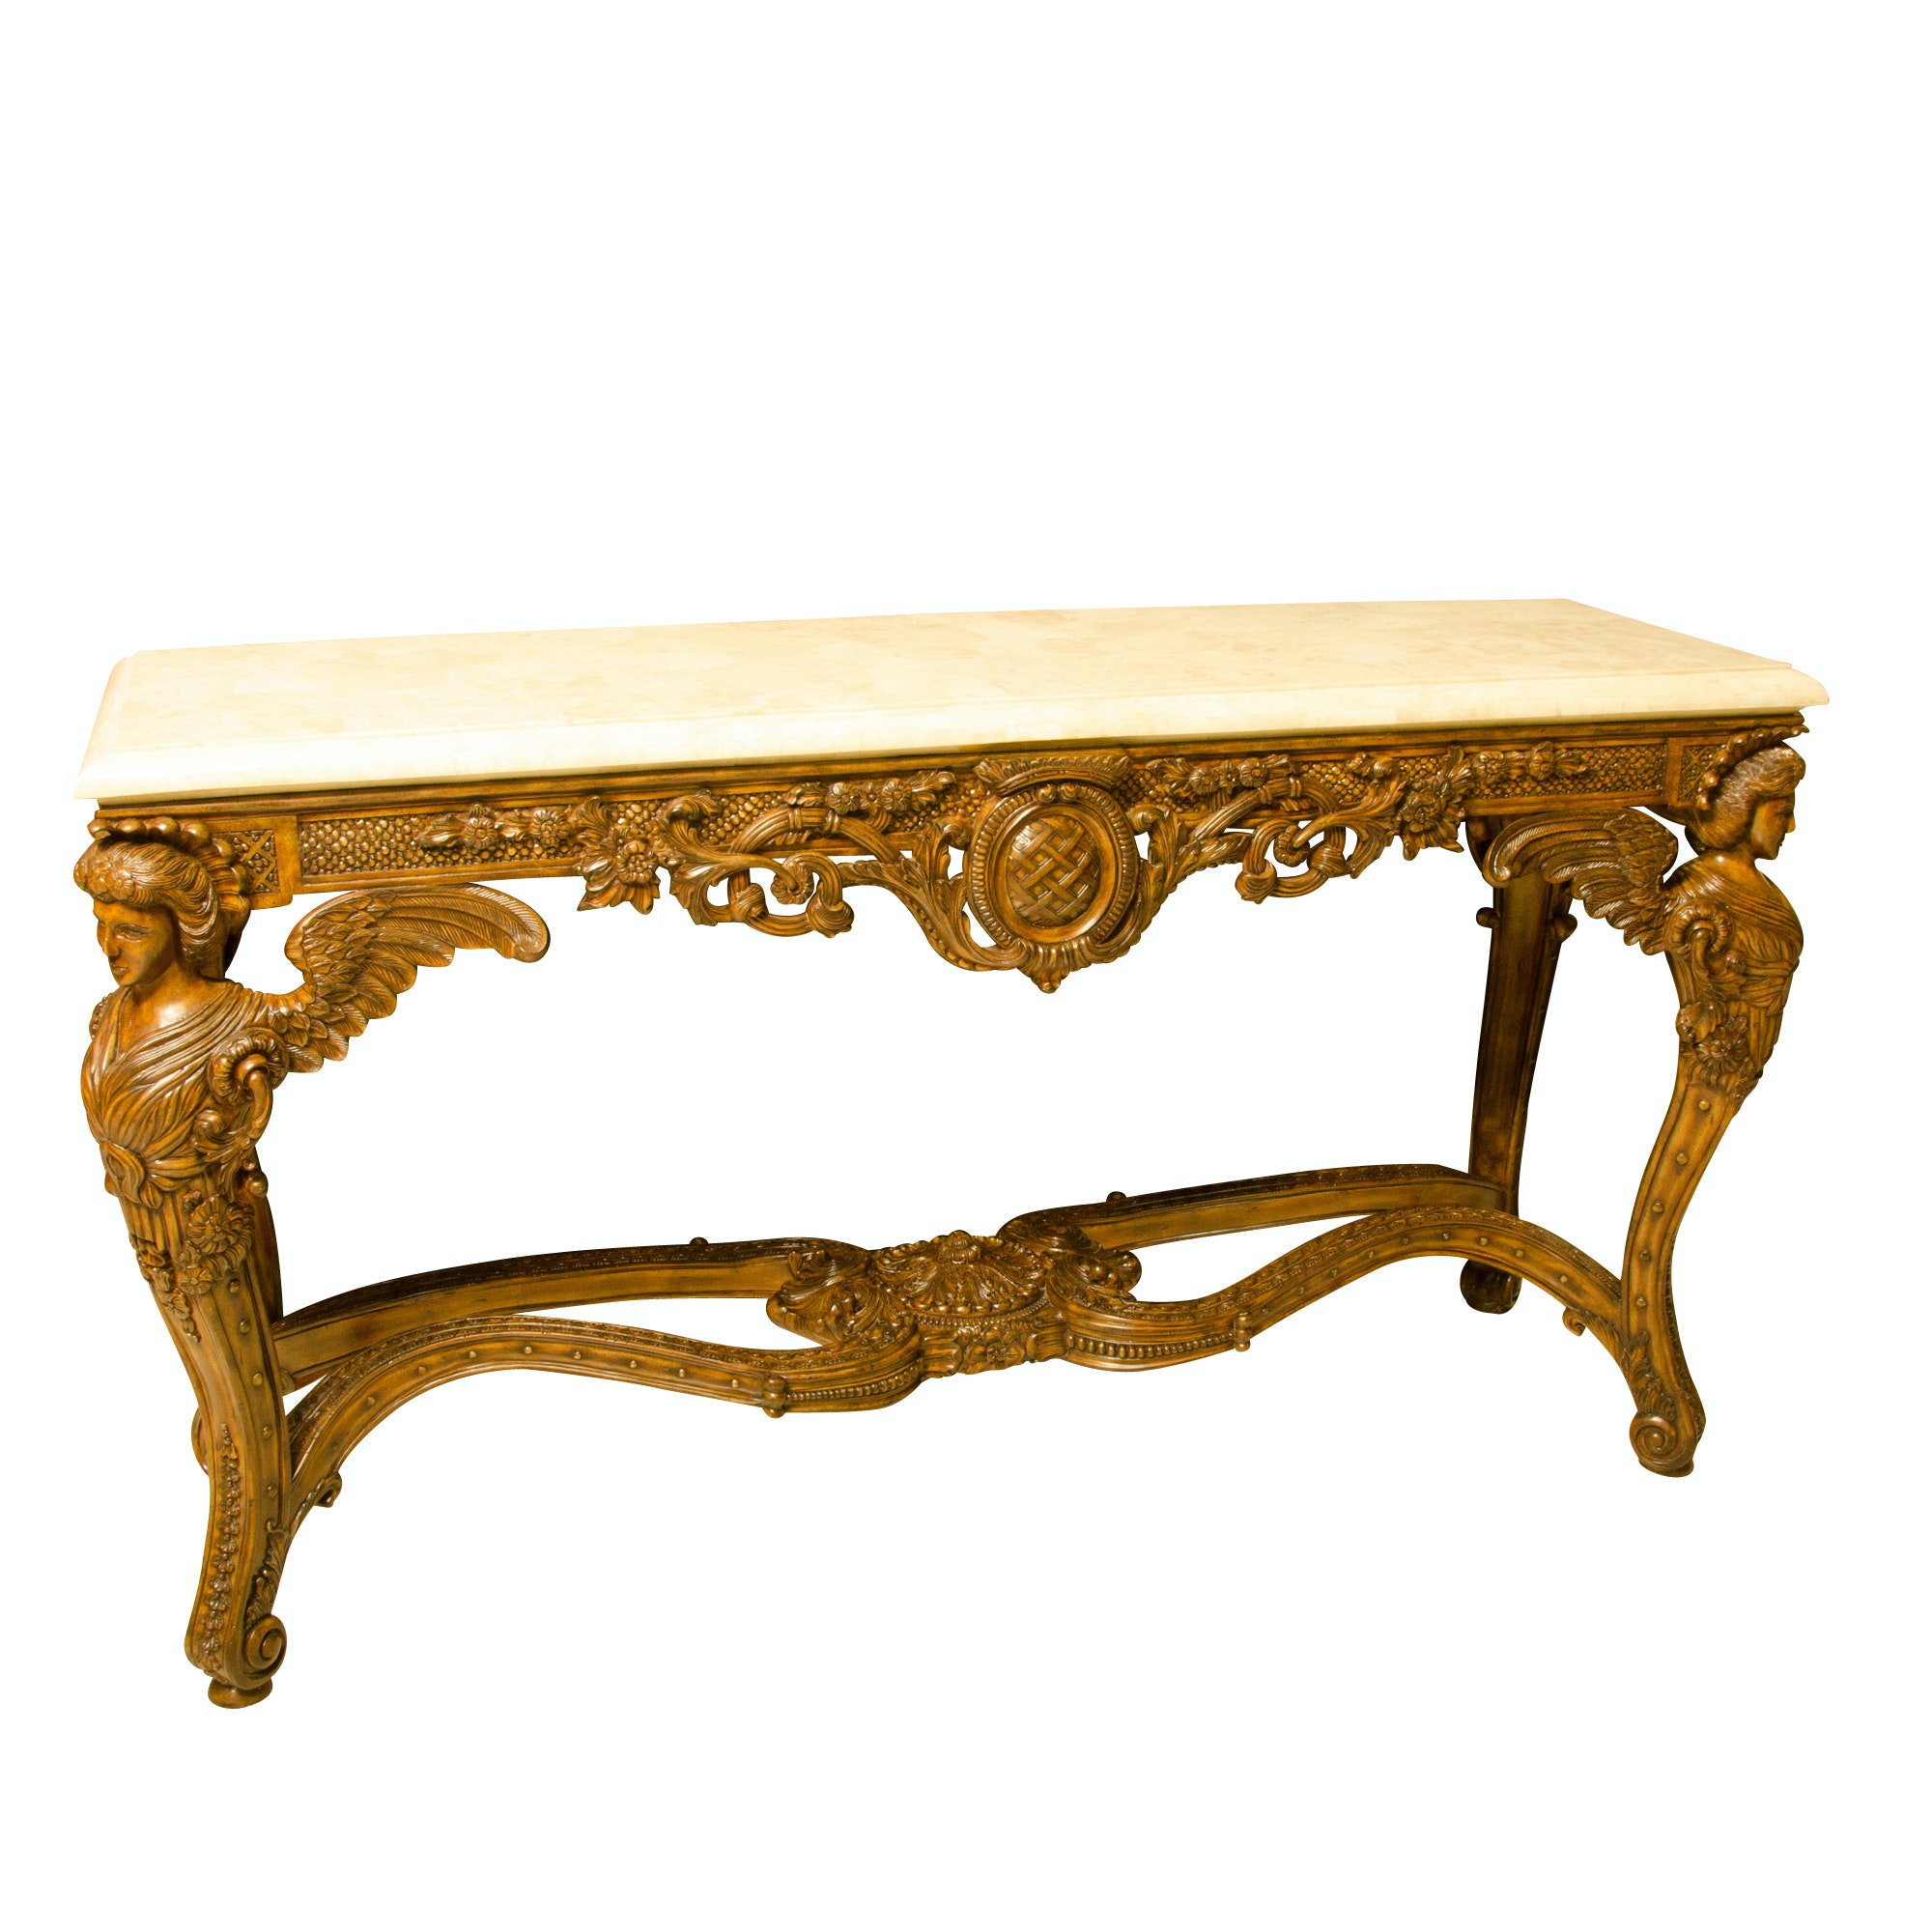 Ornate Console Table with Stone Top